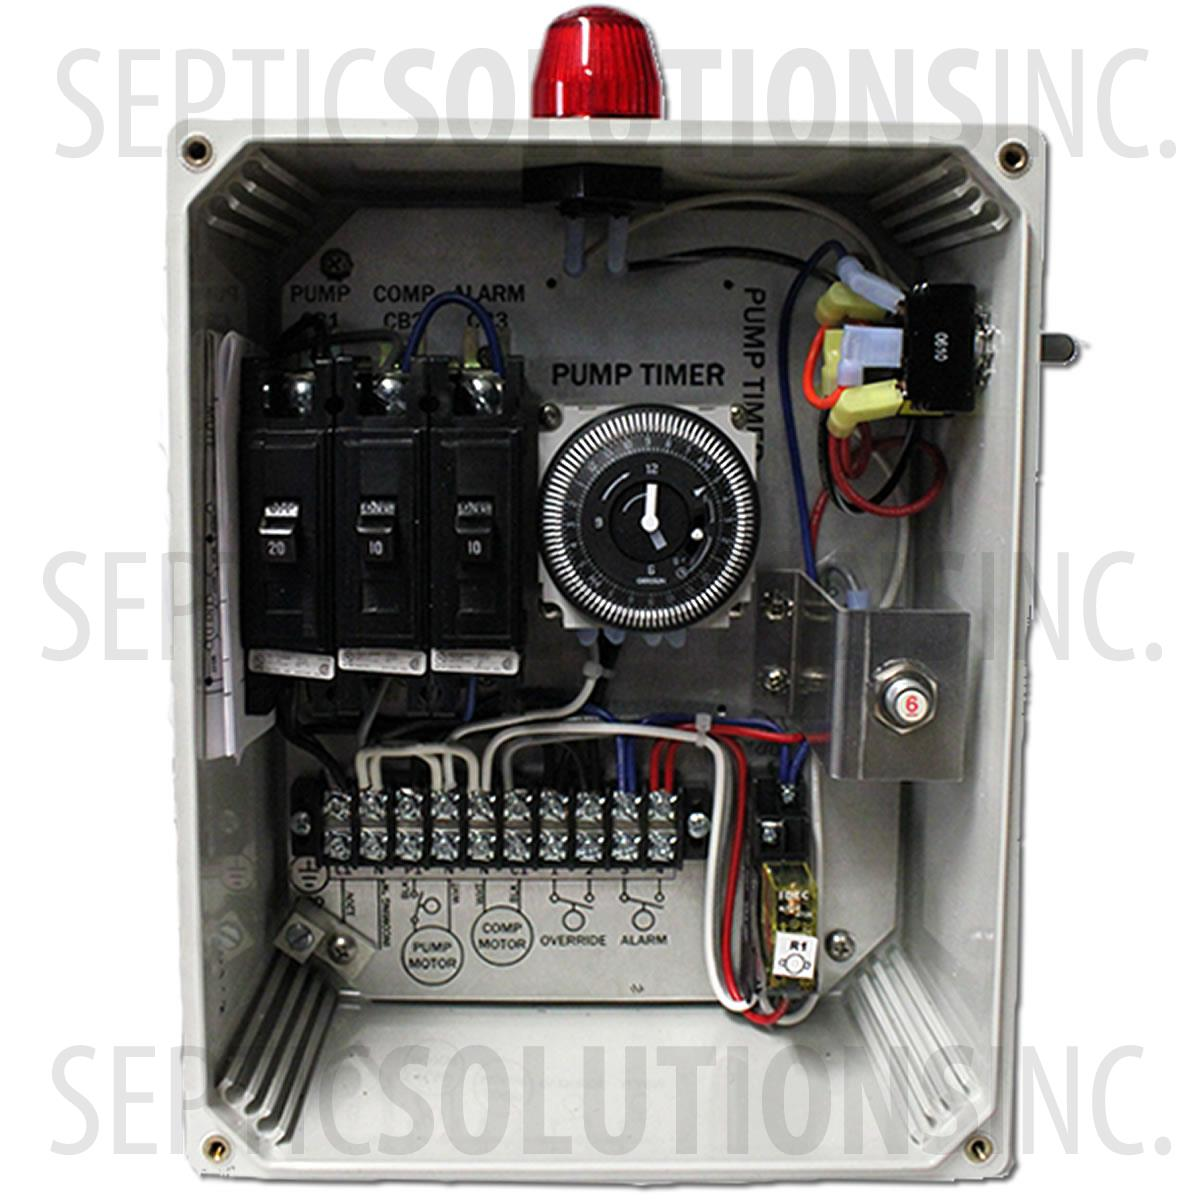 Rwt 1l Control Panel For Jet And Norweco Systems 50b009